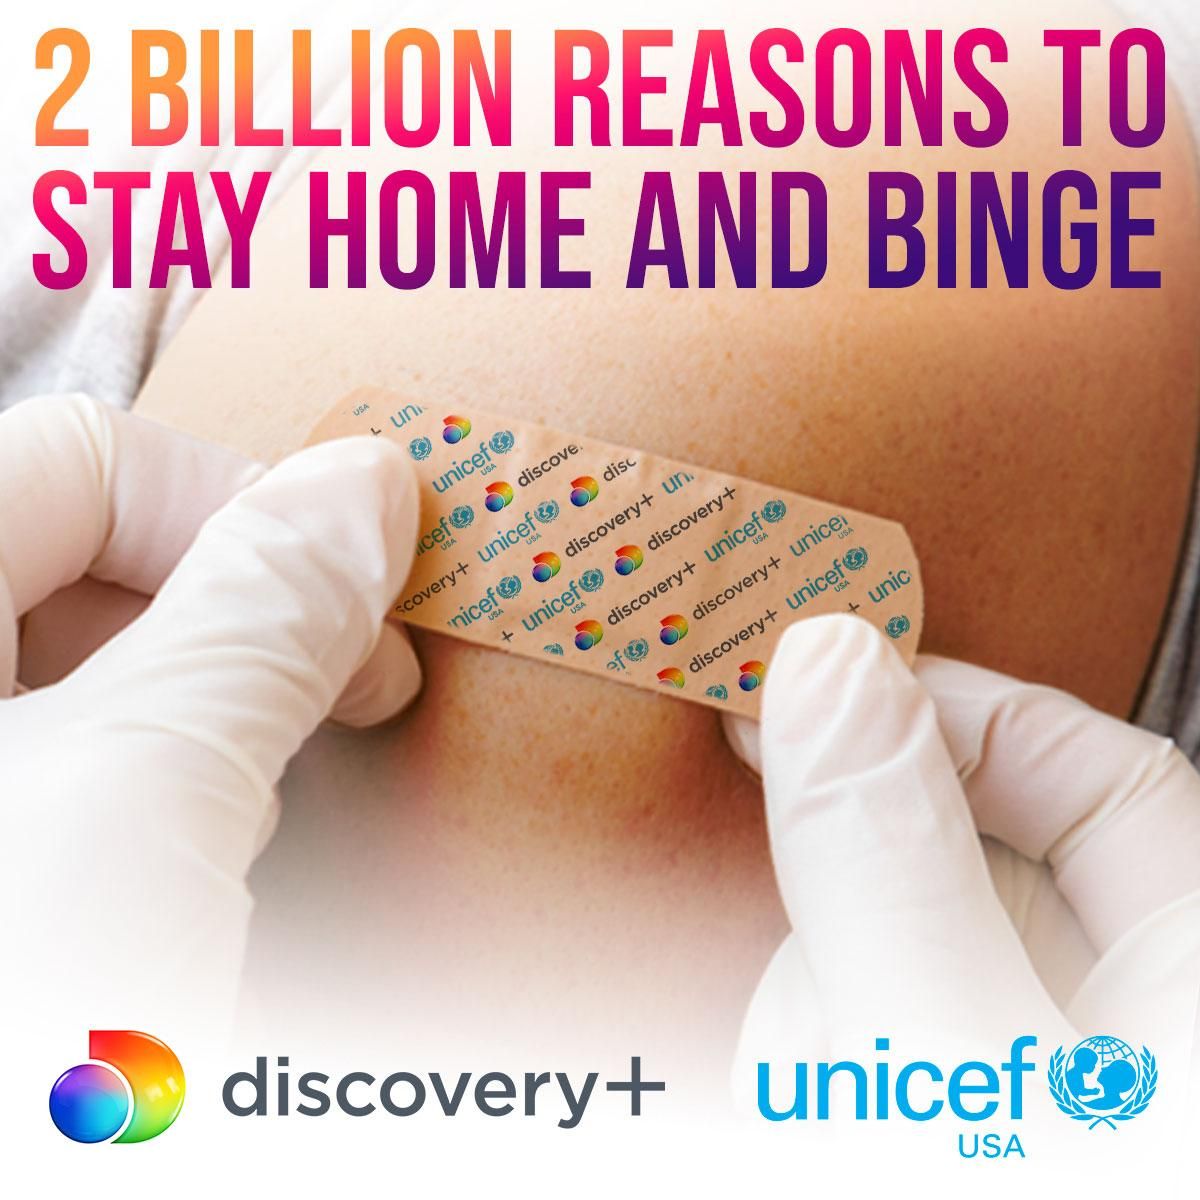 Purchase a subscription to @discoveryplus between now and April 19 and #discoveryplus will donate $1 to UNICEF USA to help deliver 2 billion doses of COVID-19 vaccines to global frontline workers and vulnerable populations in 2021➡️